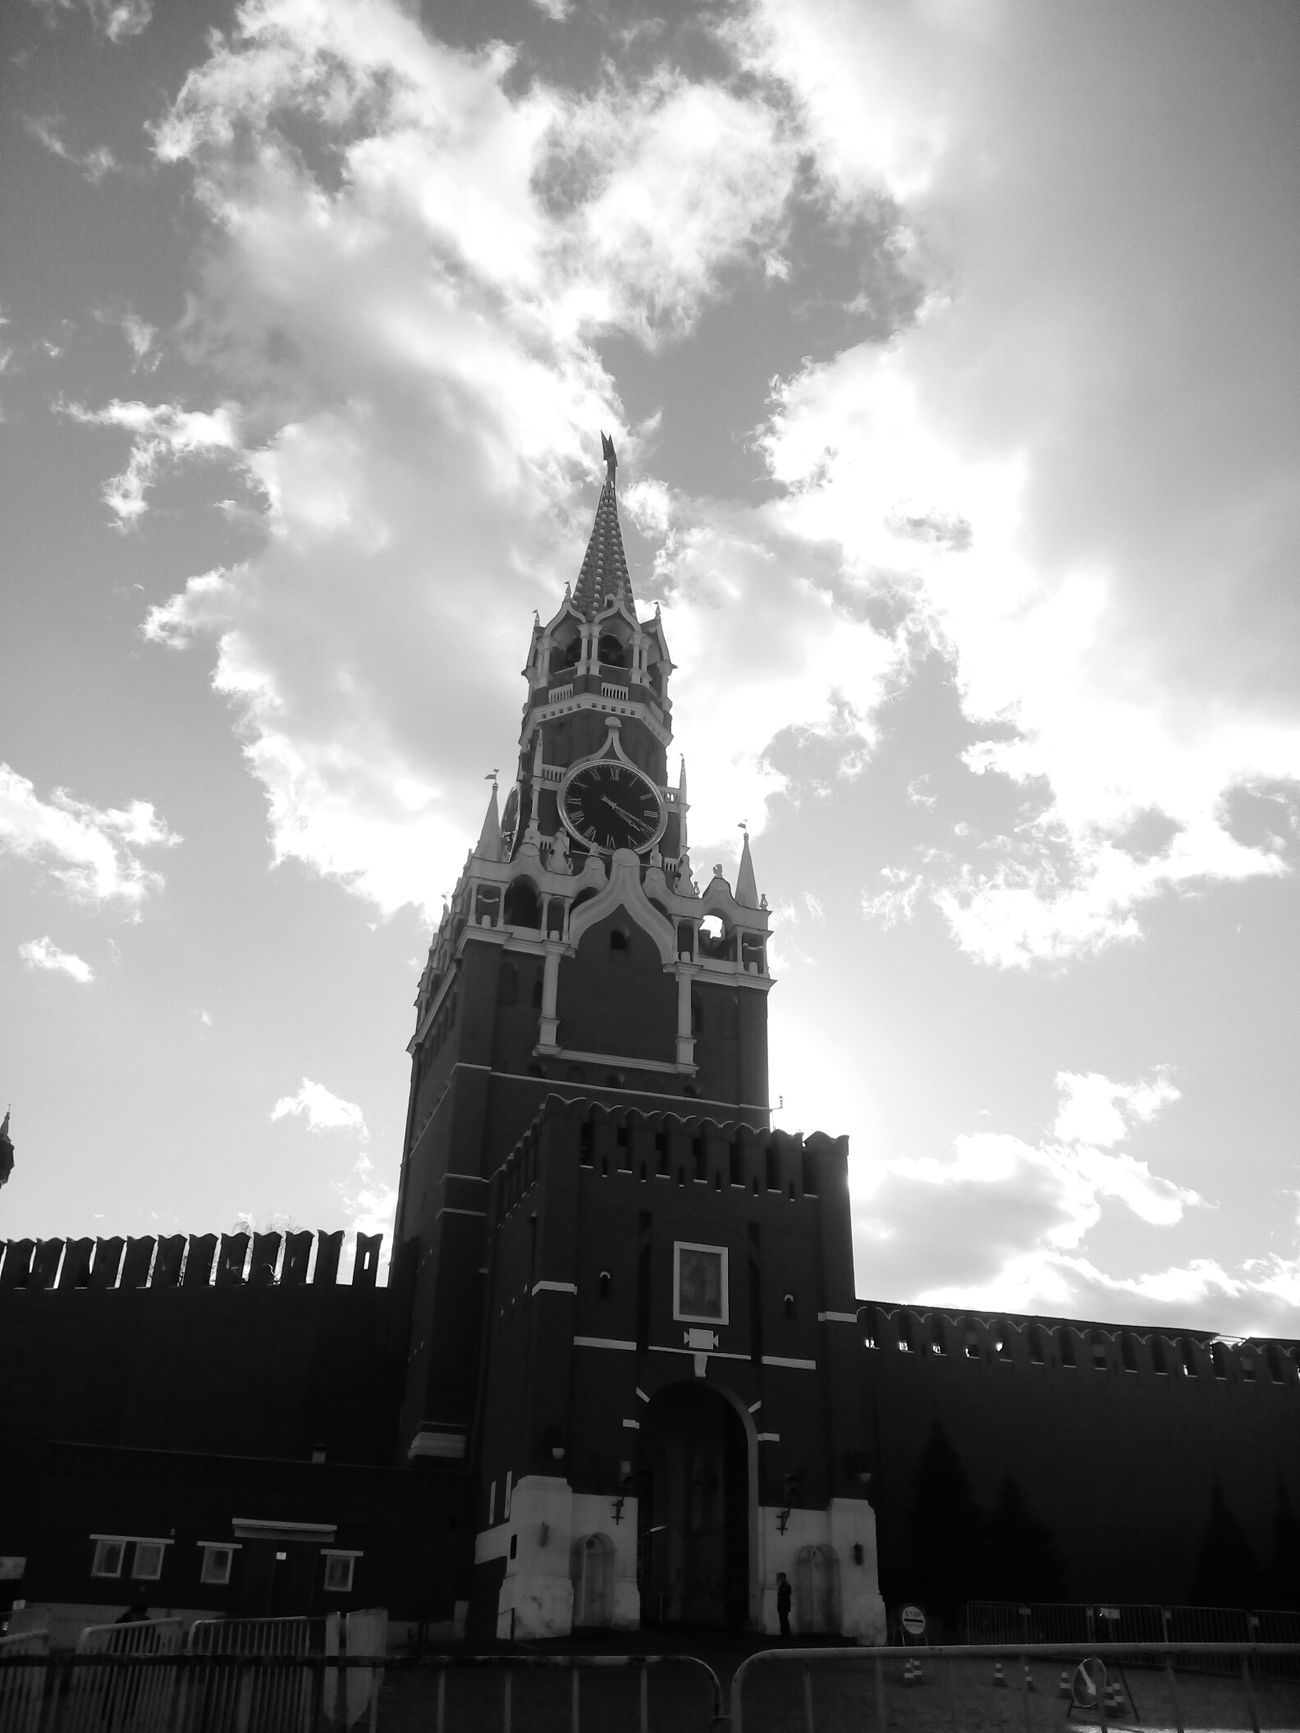 Travel Destinations Business Finance And Industry Cloud - Sky Architecture Tower No People Clock Sky Place Of Worship Built Structure Outdoors Clock Tower Day Moscow Architecture Black & White Kremlin